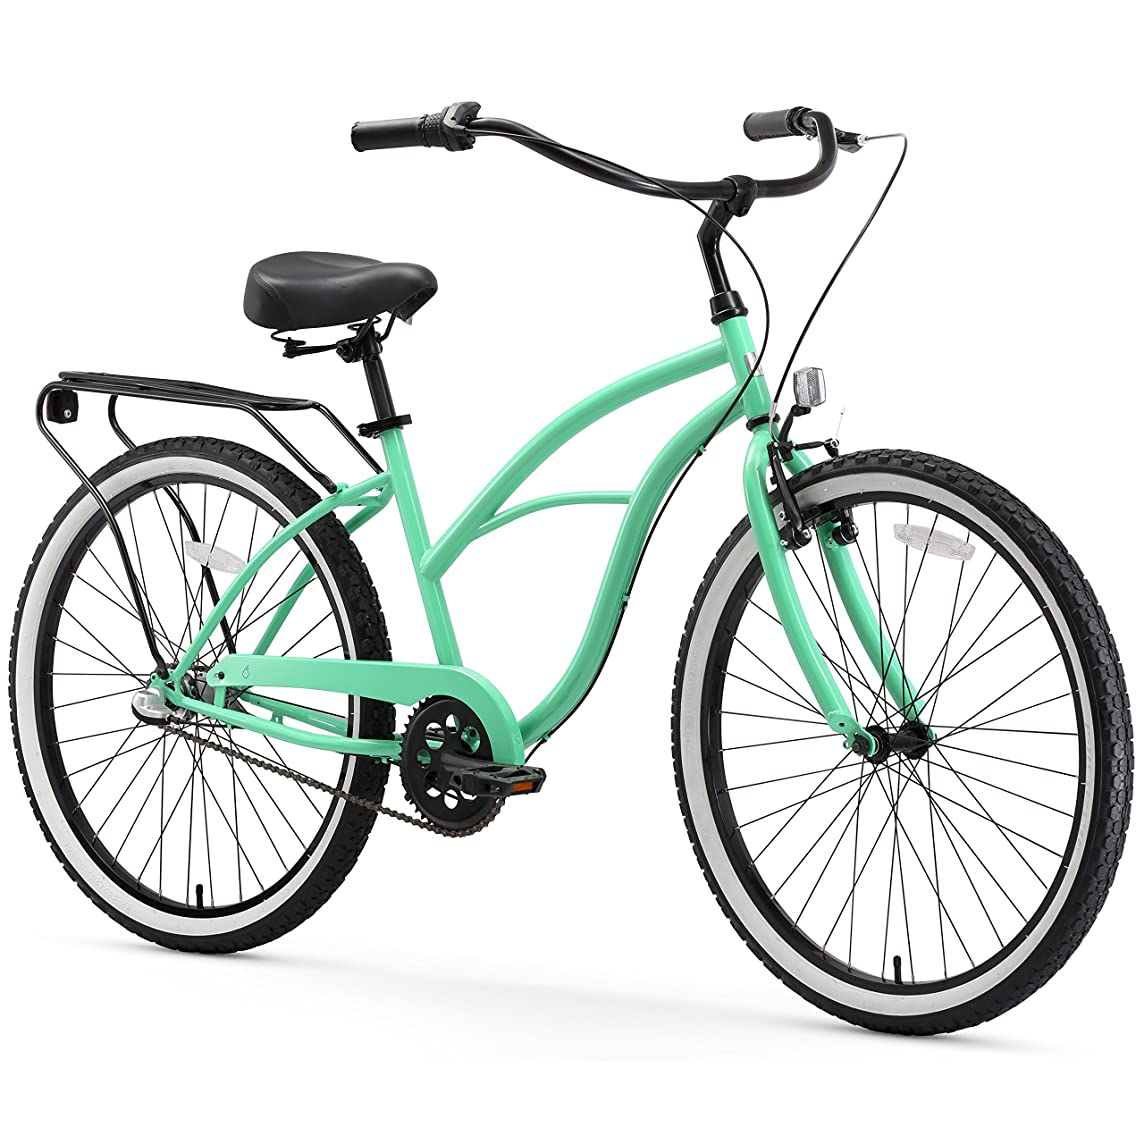 sixthreezero Around the Block Women's Cruiser Bike (24-Inch & 26-Inch)